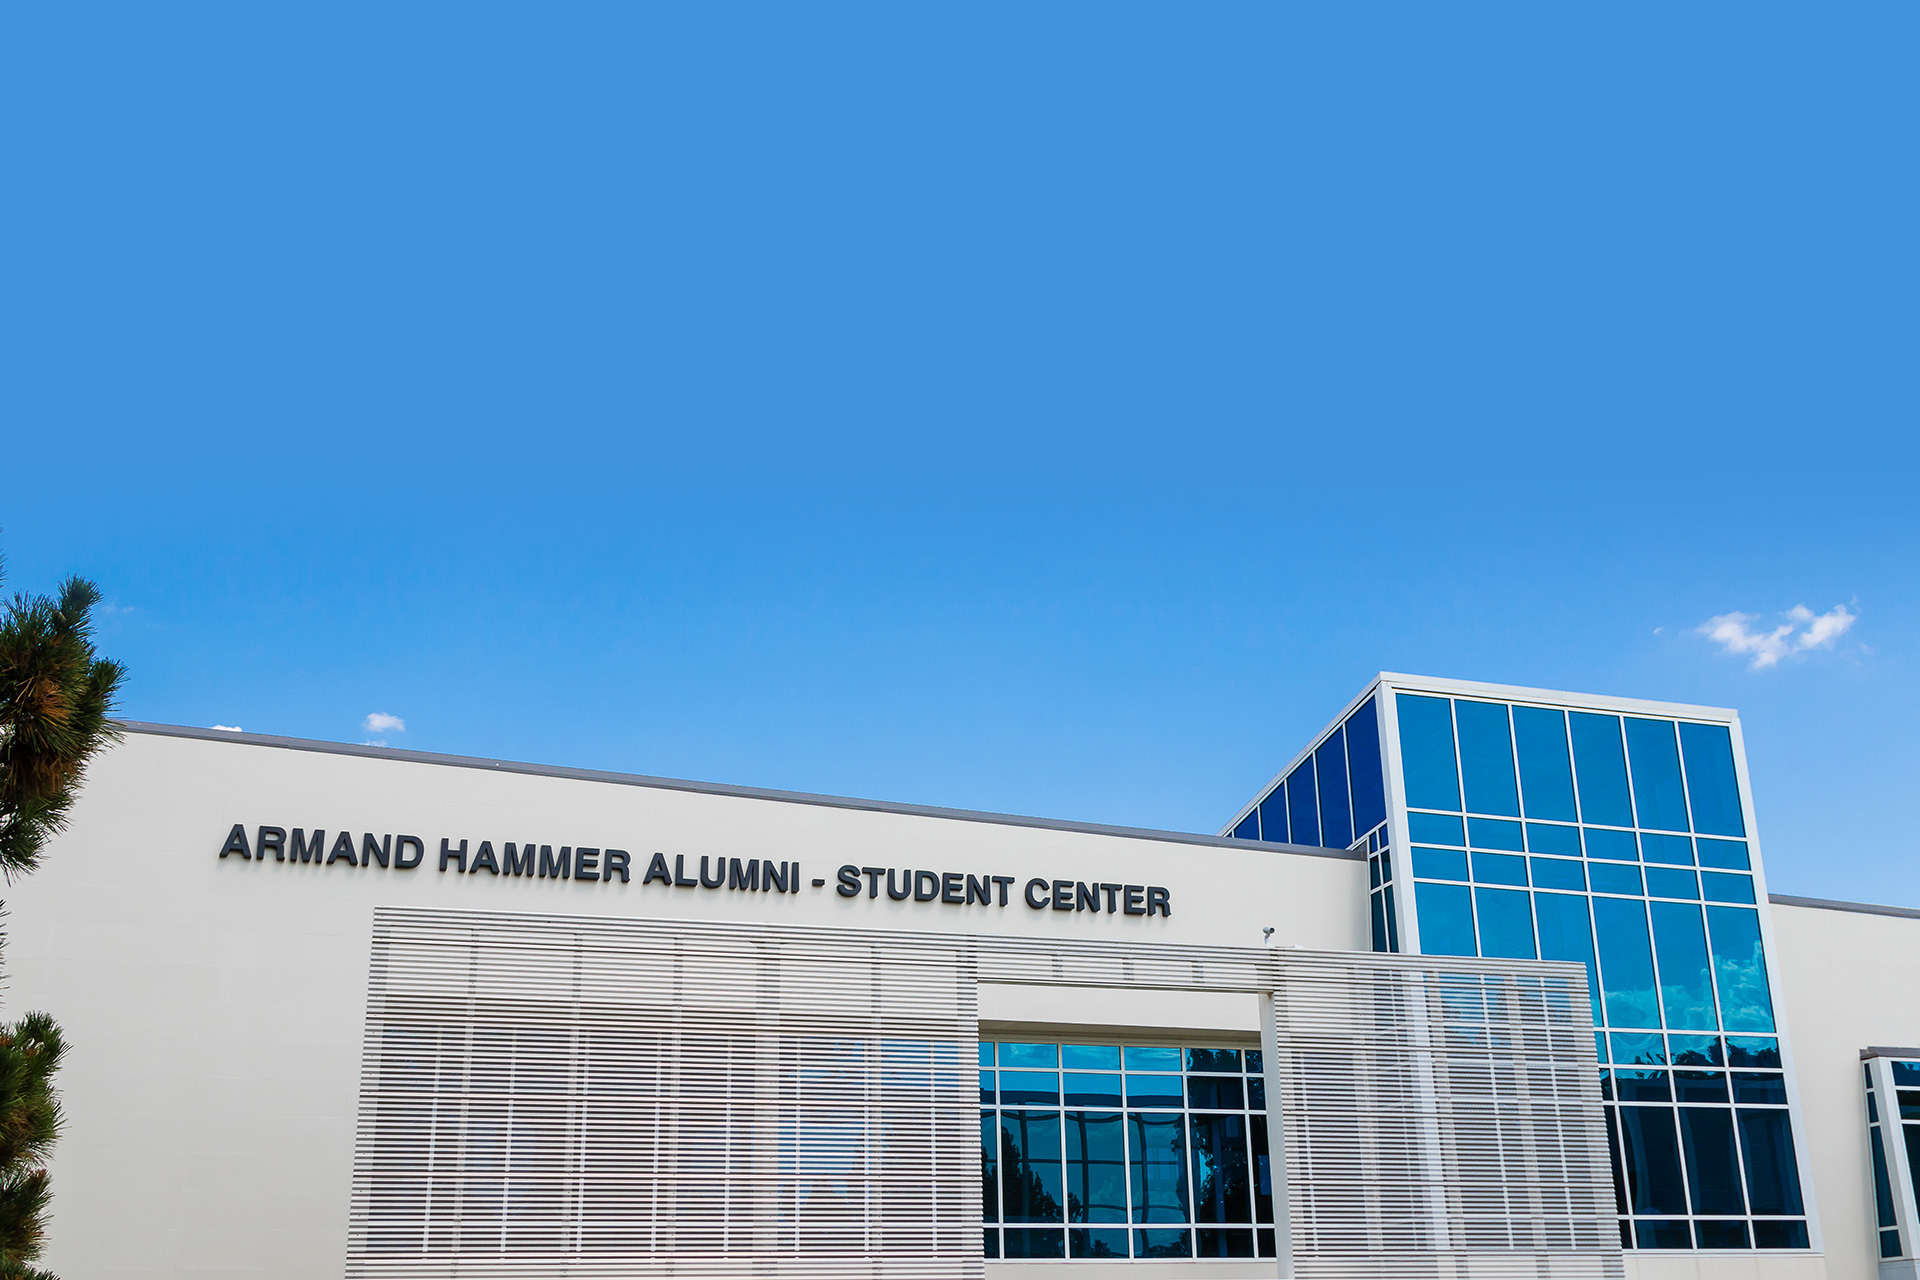 Armand Hammer Building